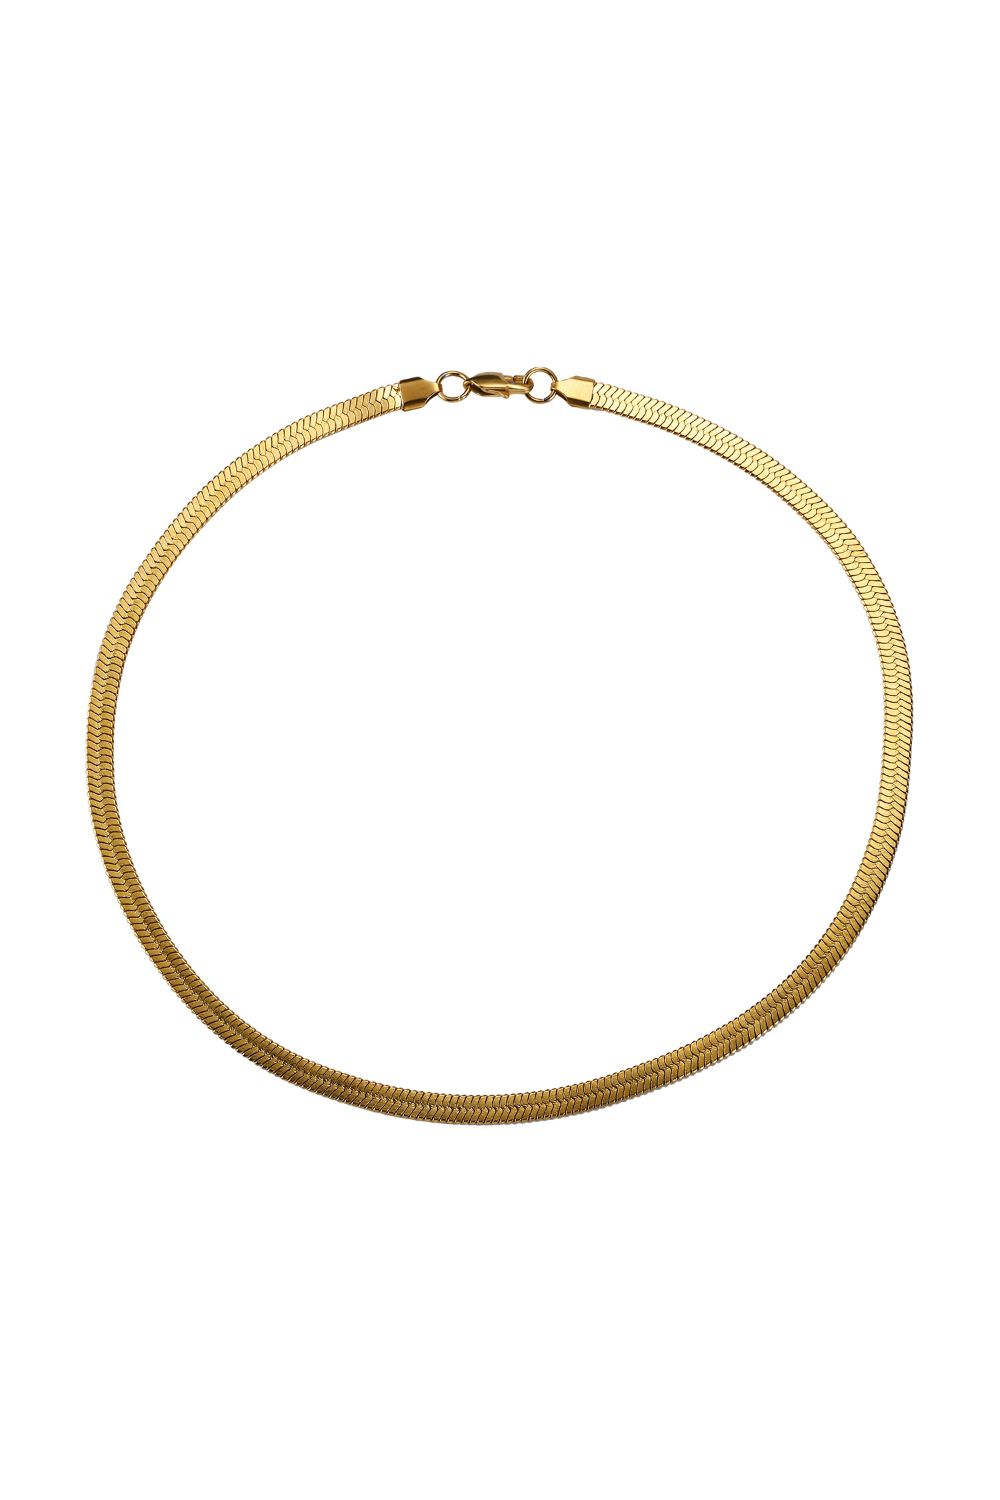 Flat Herringbone 1mm 18K Gold Filled Chain 30""